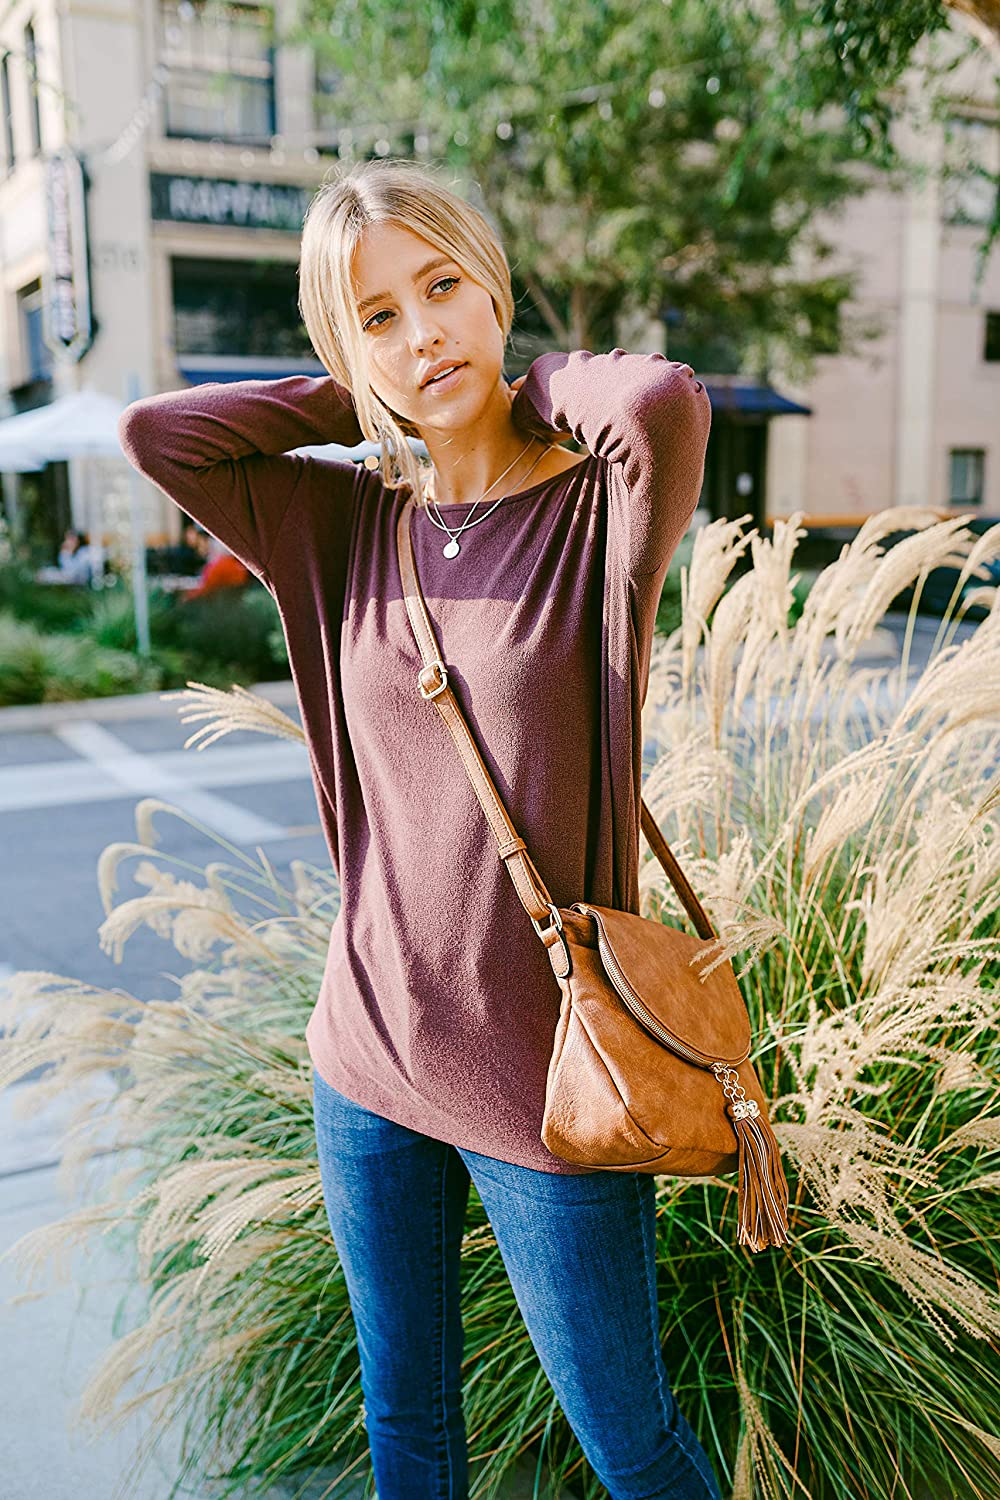 Tassel Accent Crossbody Bag with Flap Top